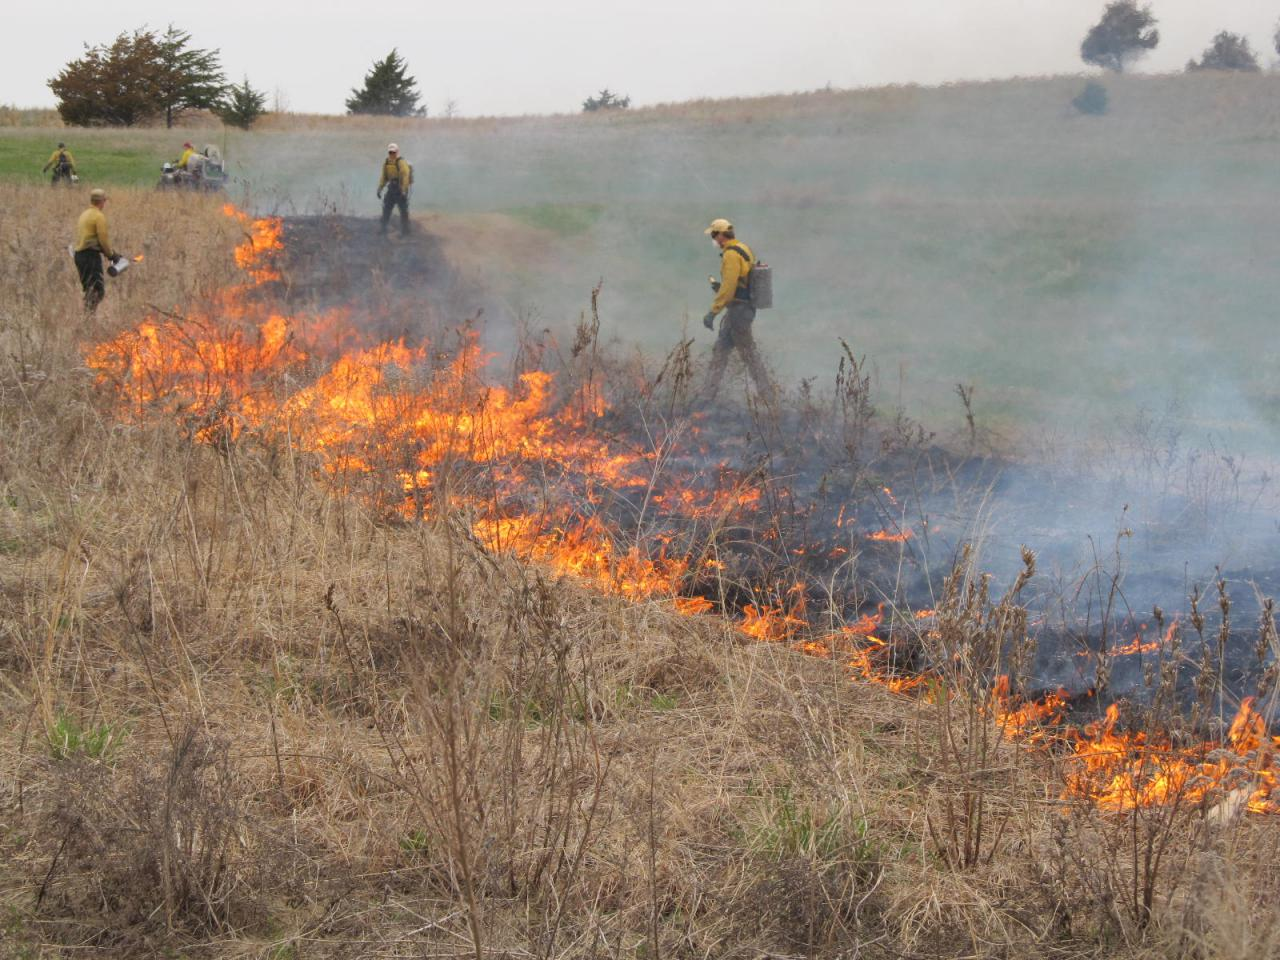 Instead of treating nature as a museum, these people are working with this grassland by utilizing fire.